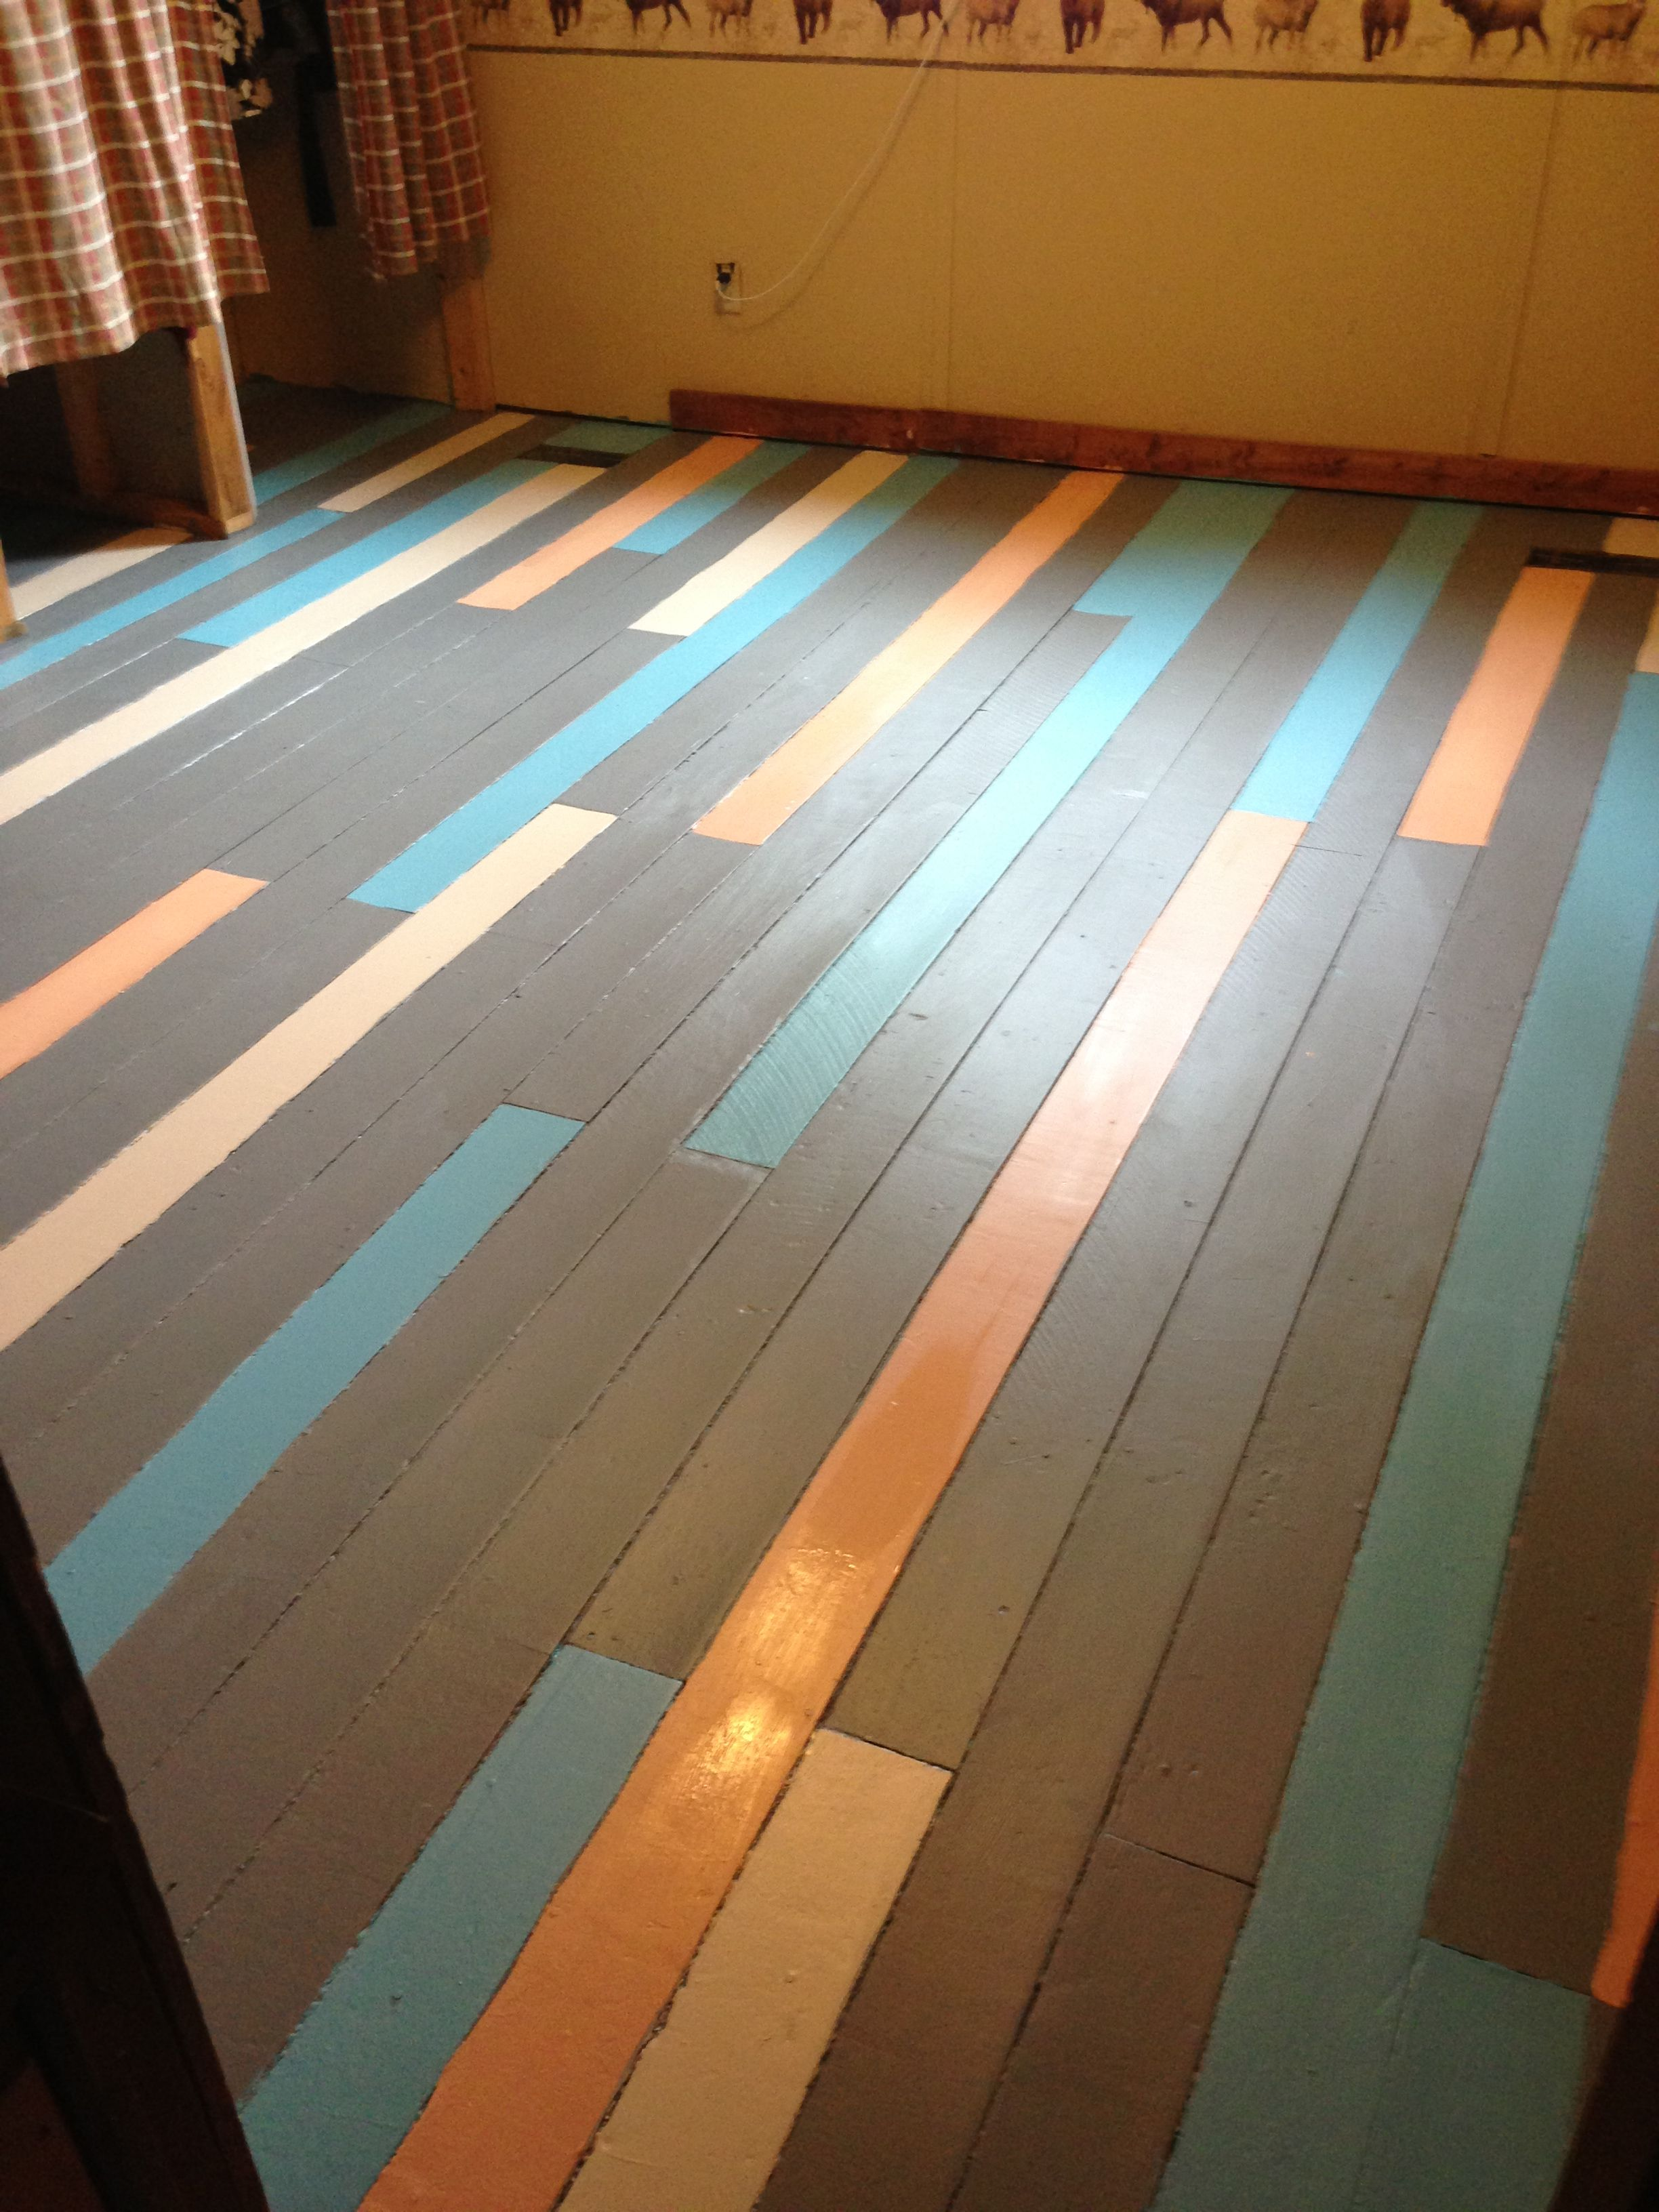 Pin On Creative Painted Floors For Kids